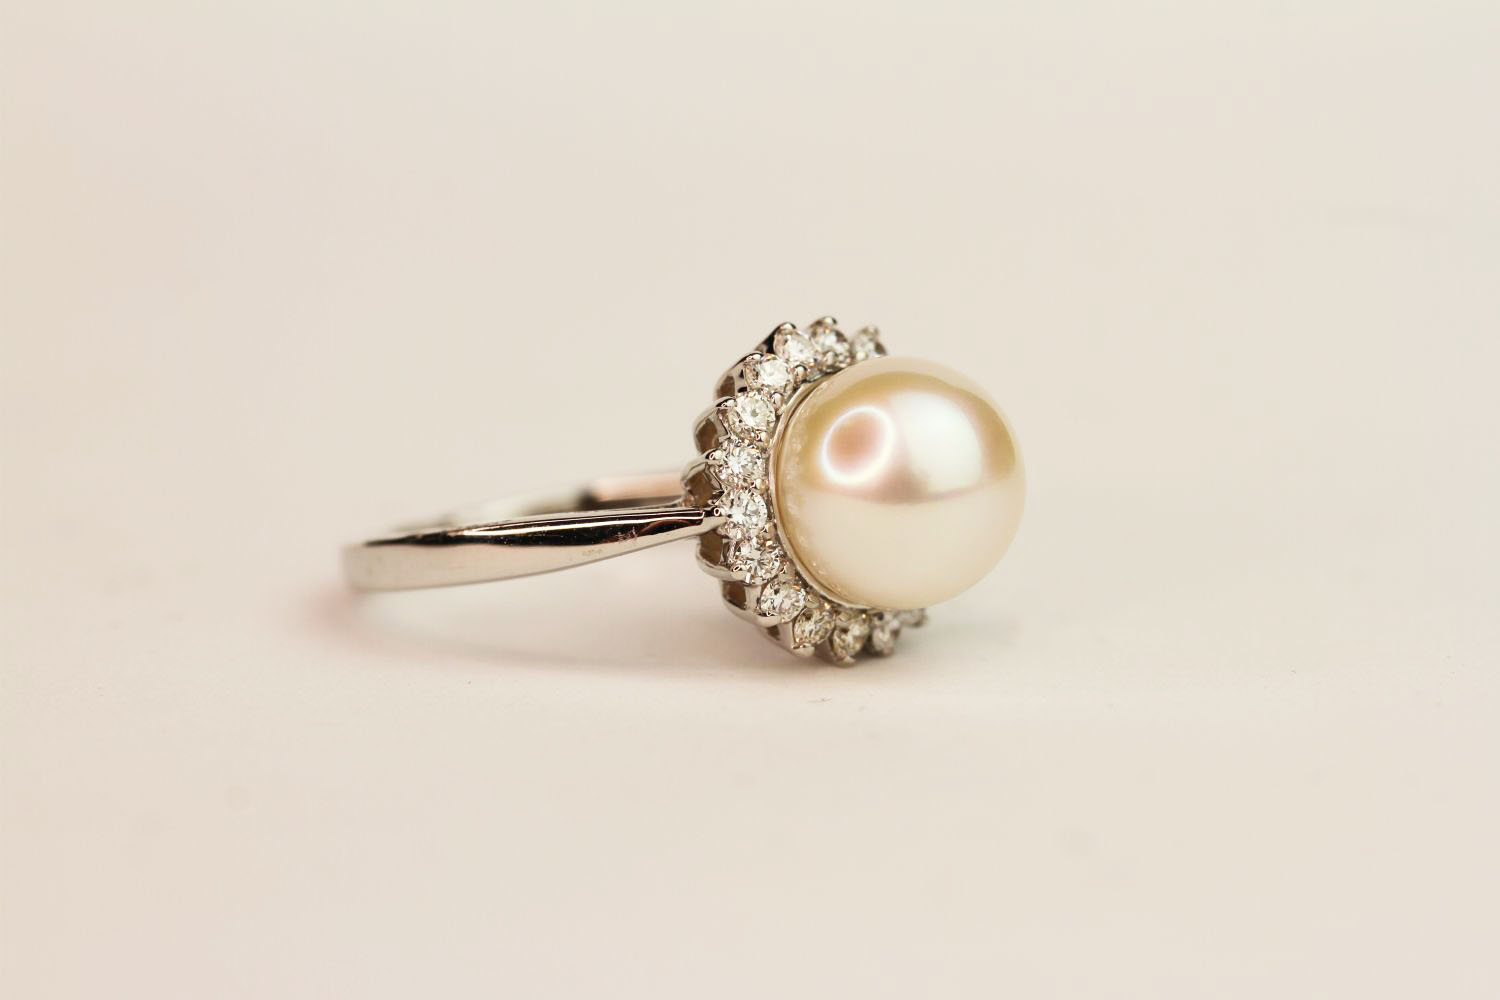 9ct white gold pearl and diamond halo ring. Diamonds 0.37ct, ring size N1/2. - Image 2 of 3